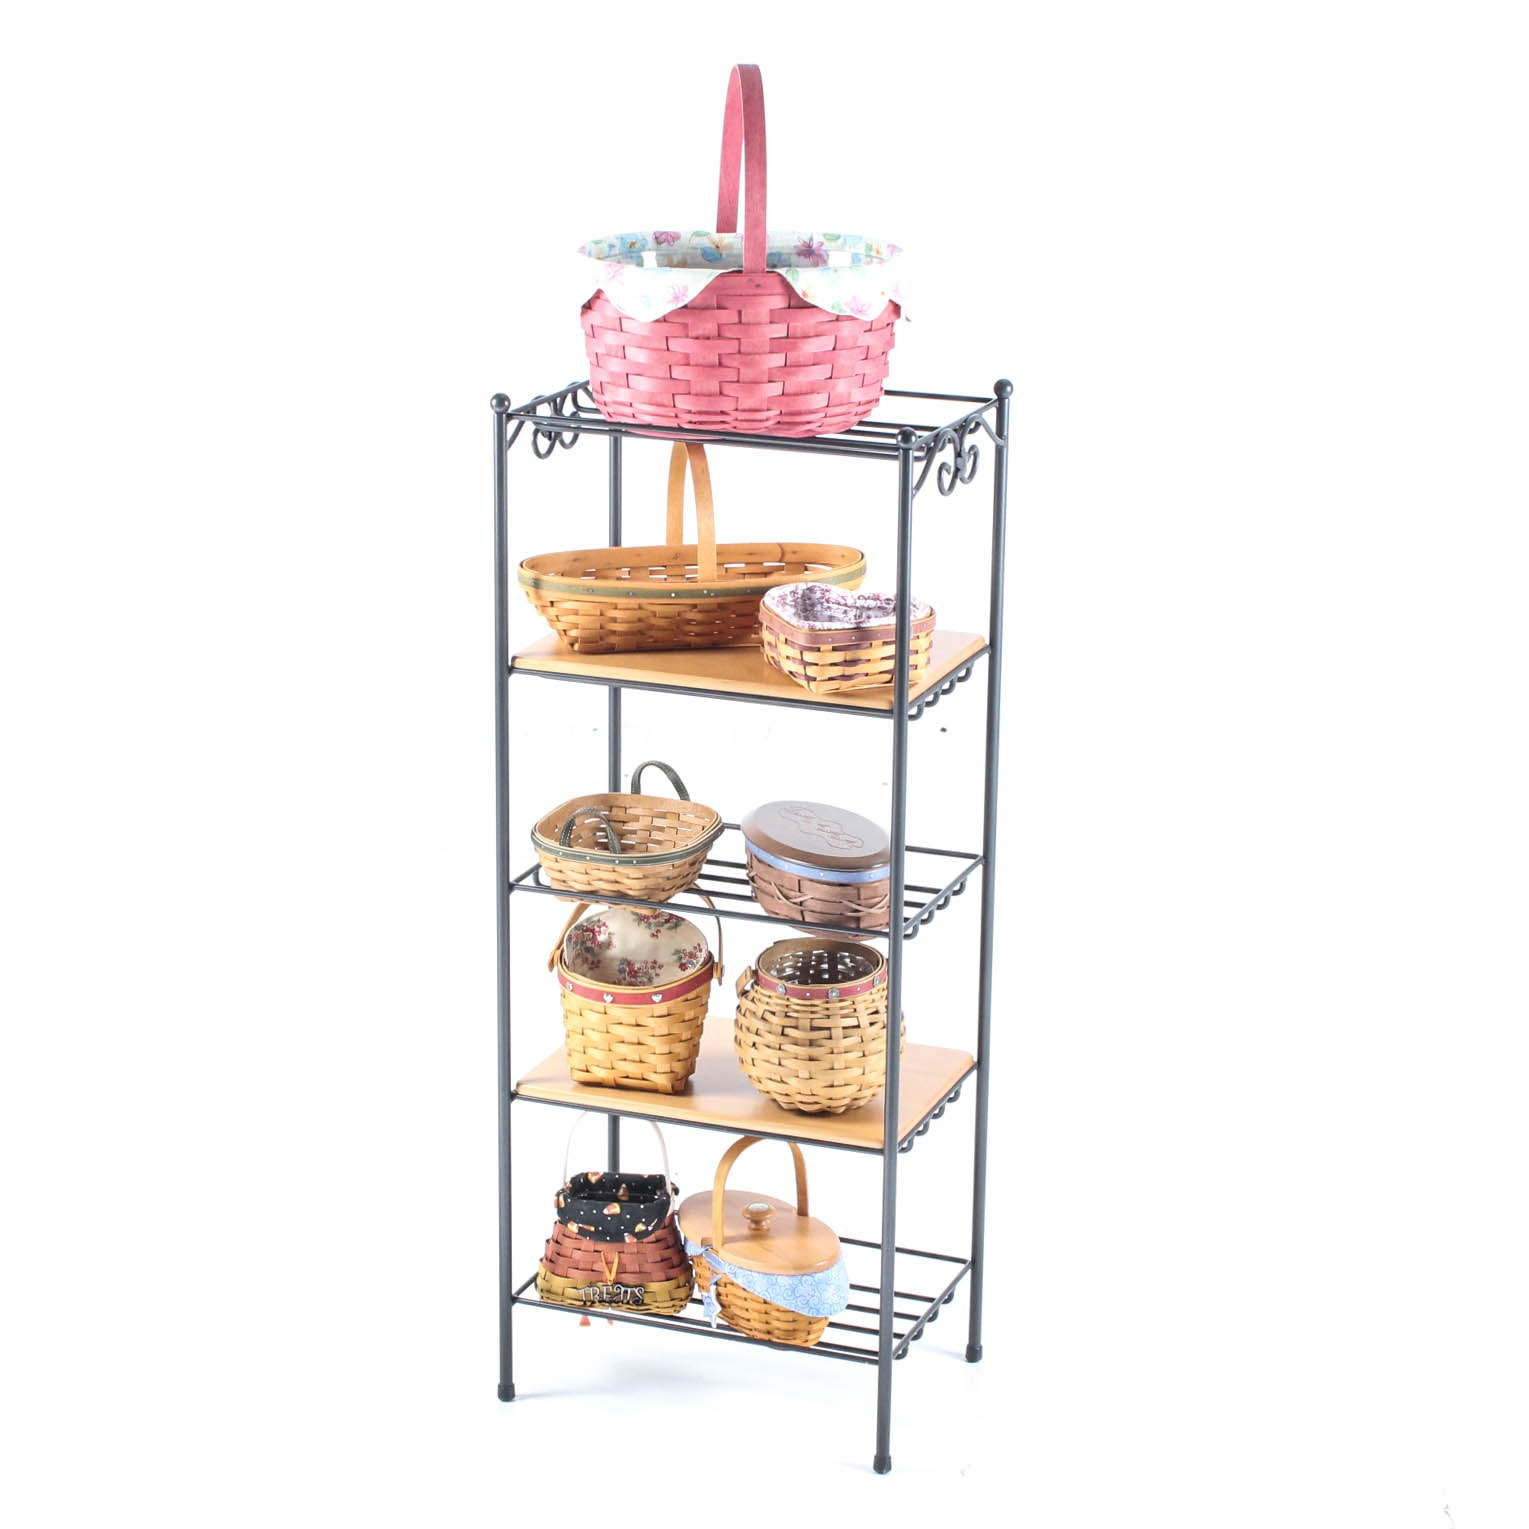 Longaberger Wrought Iron Stand and Baskets